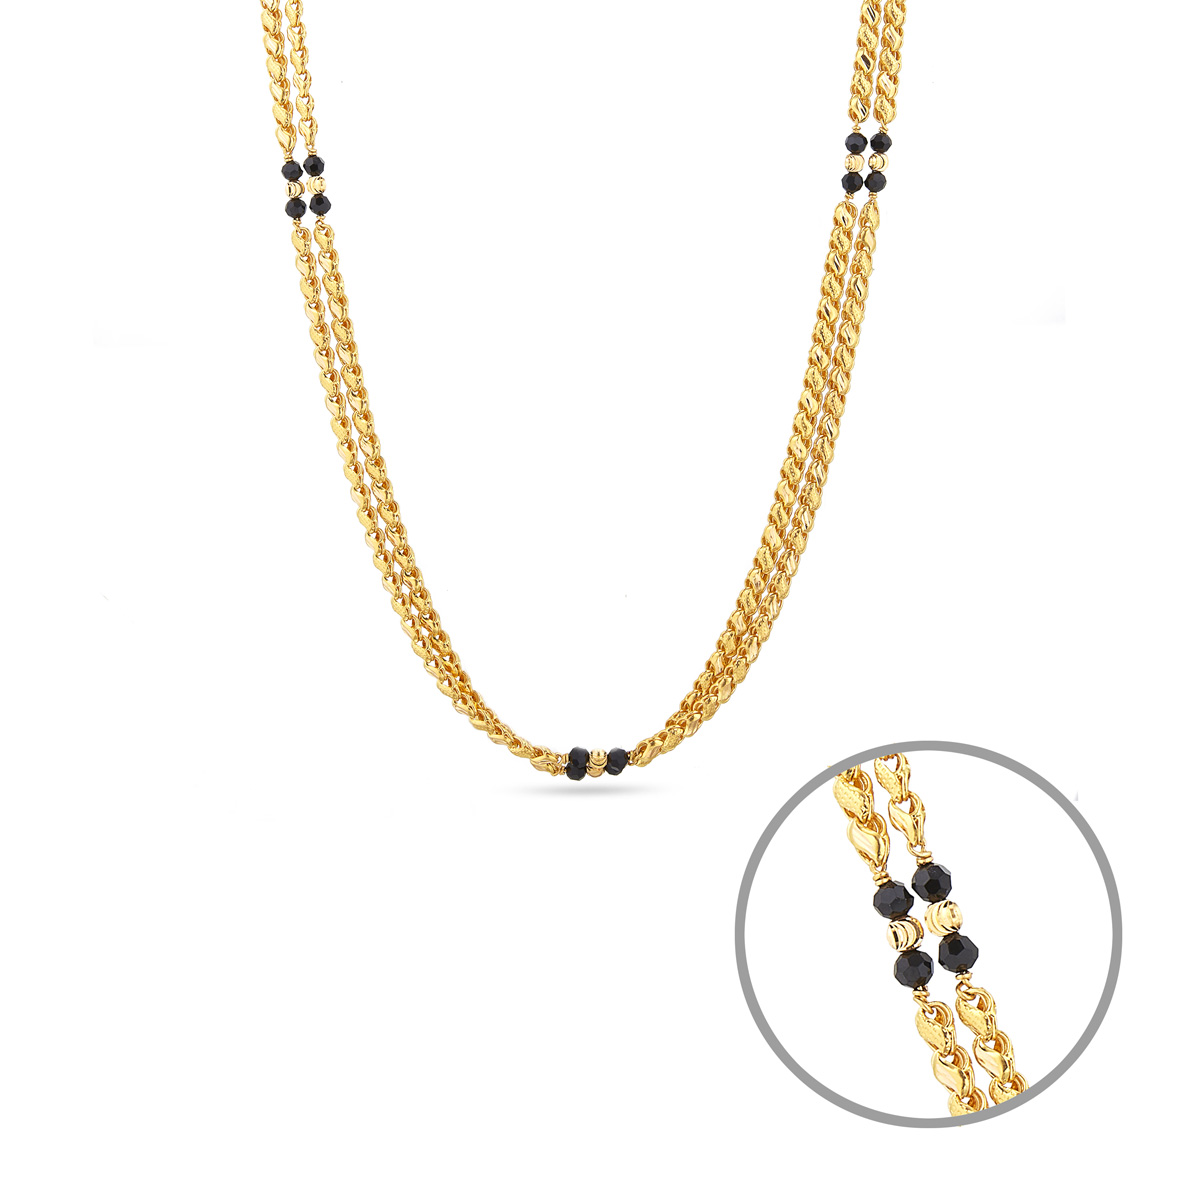 Two Strand Gold Chain